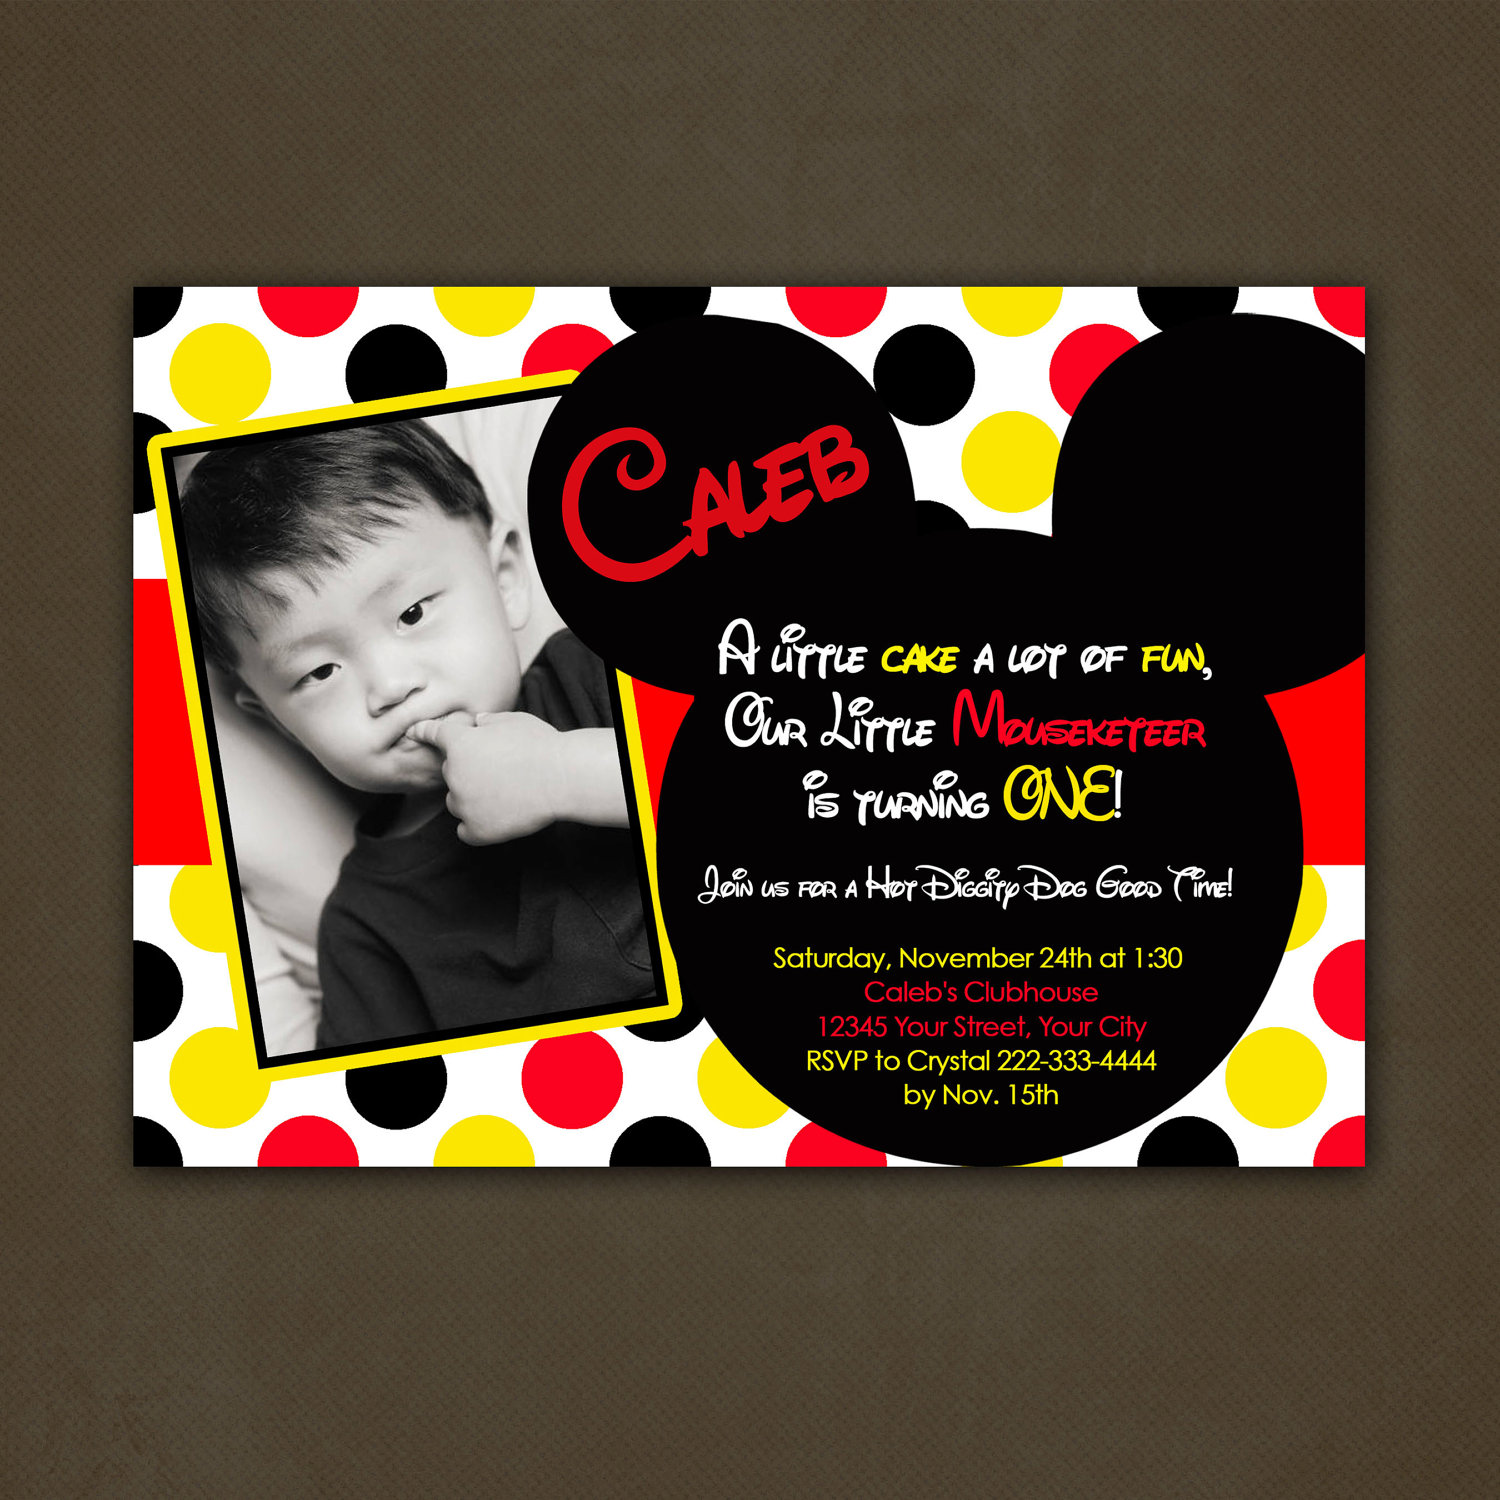 birthday invitation mickey mouse theme ; mickey-mouse-birthday-party-invitations-to-create-a-elegant-Party-invitation-design-with-elegant-appearance-1